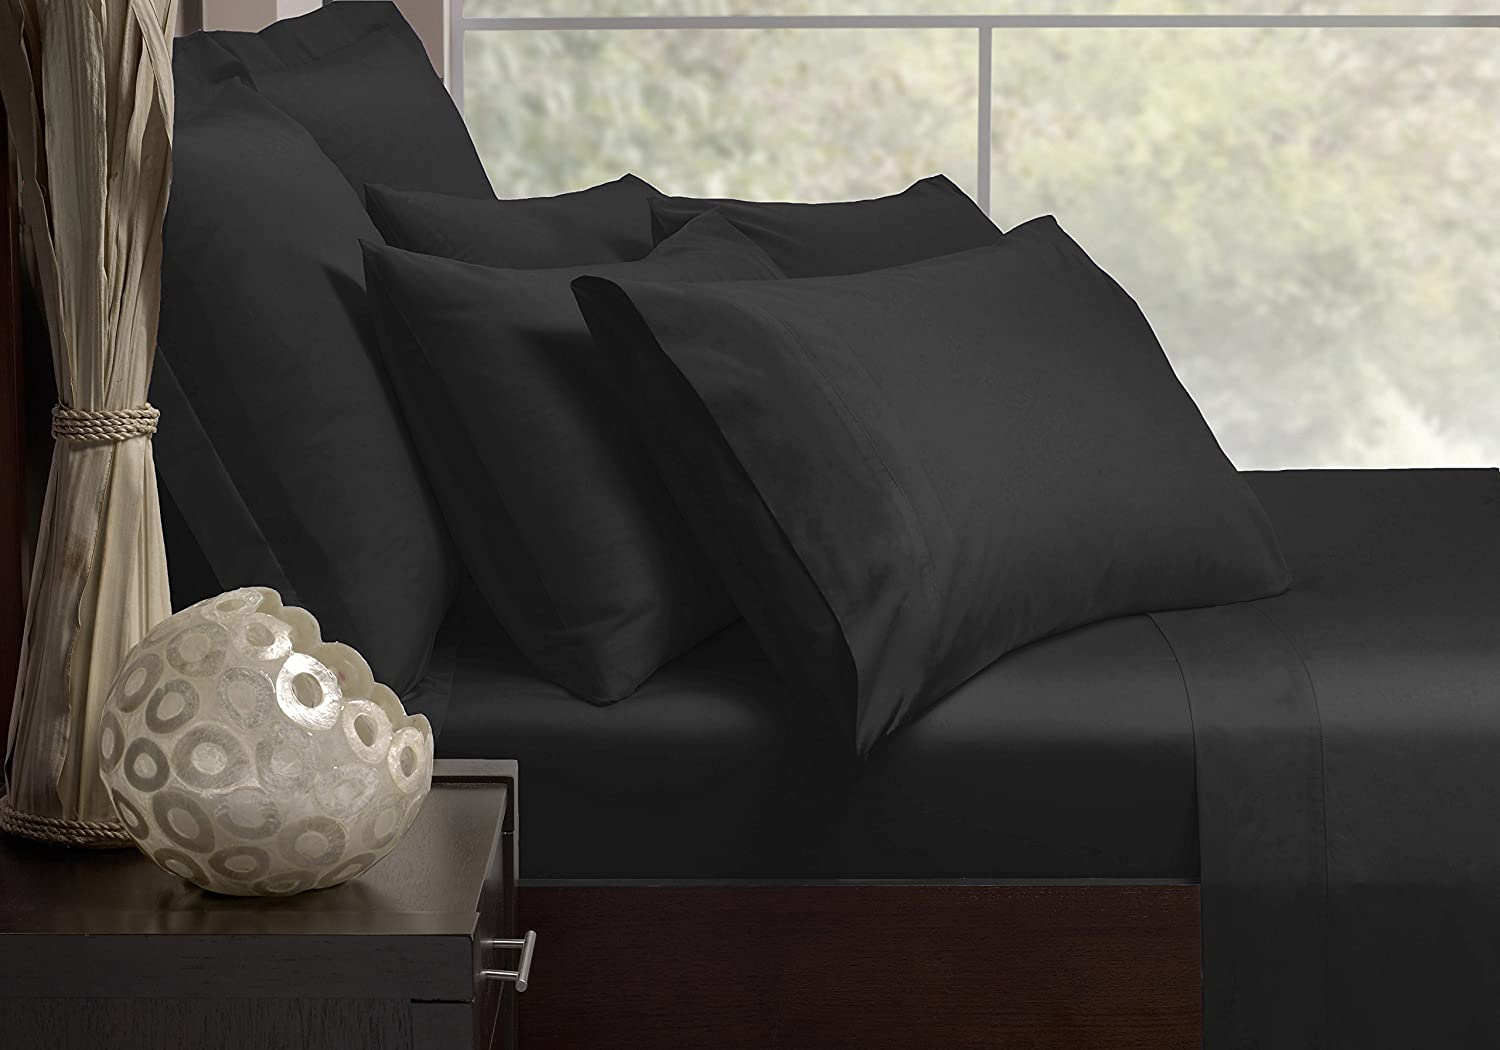 Double Extra Soft Fine Combed Polycotton Percale 180TC Flat Sheet in Black